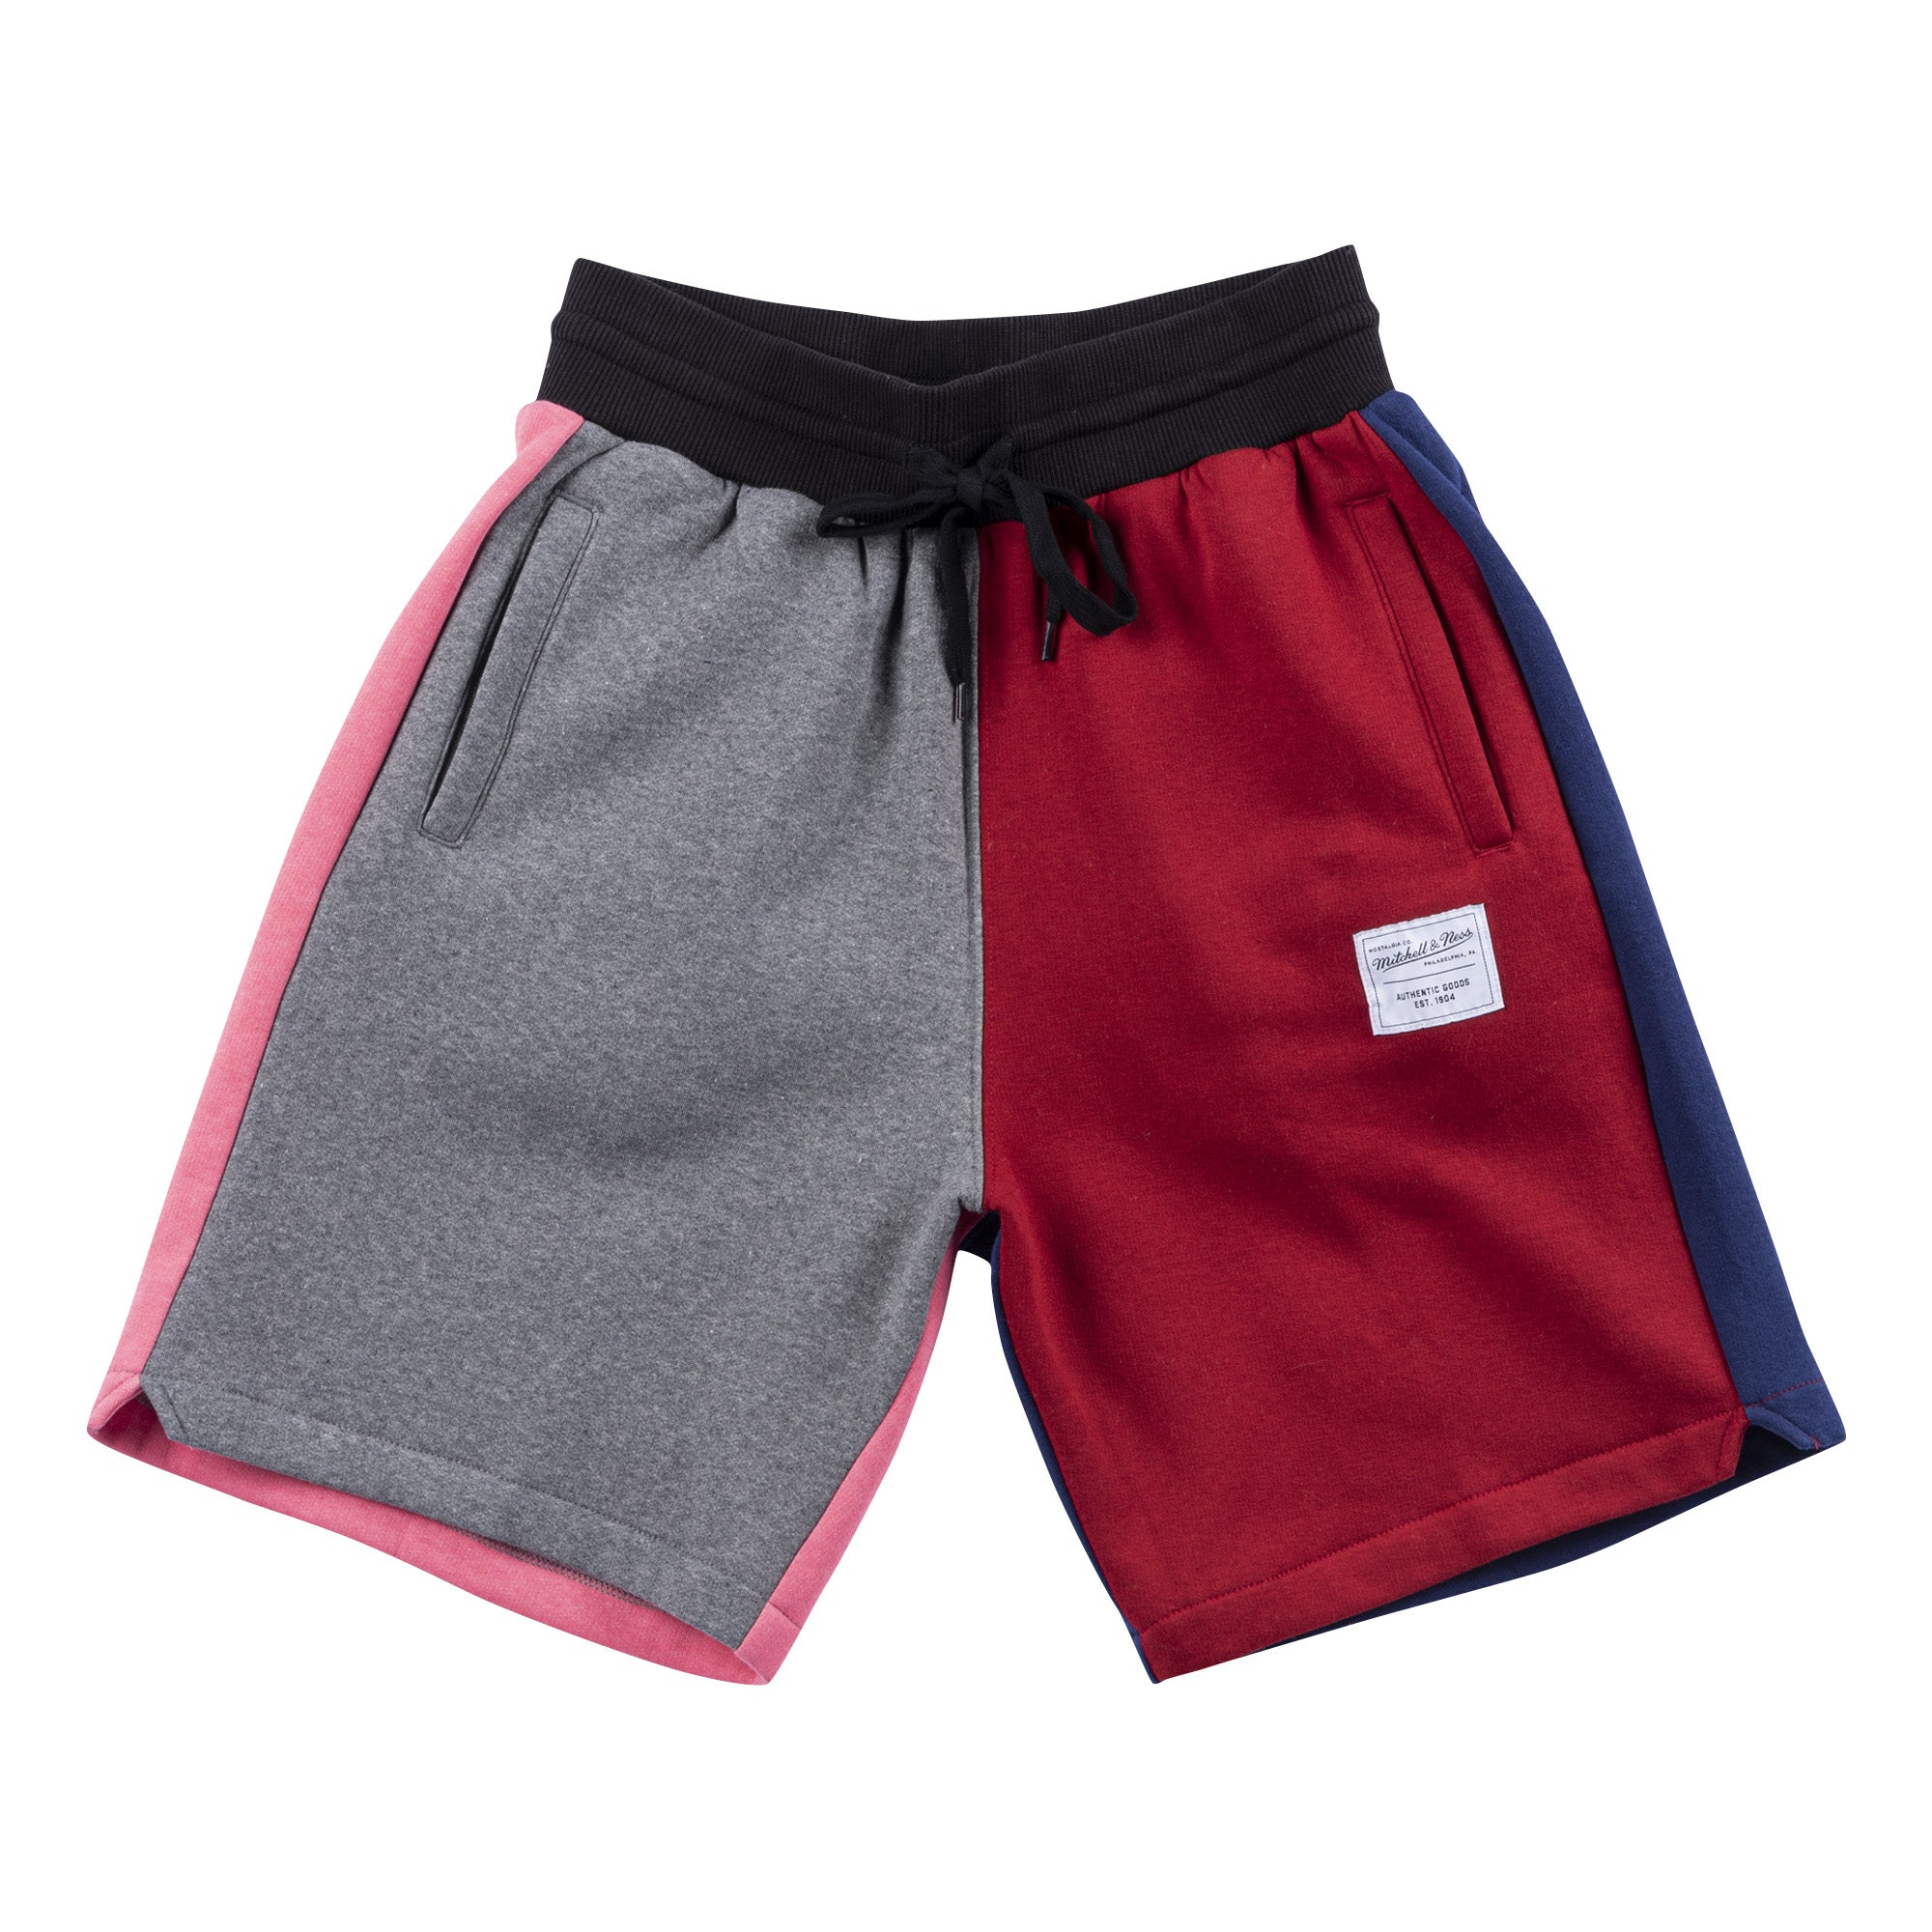 Branded Colorblock Fleece Short Branded - Grå/Rød/Navy/Pink - Mitchell & Ness